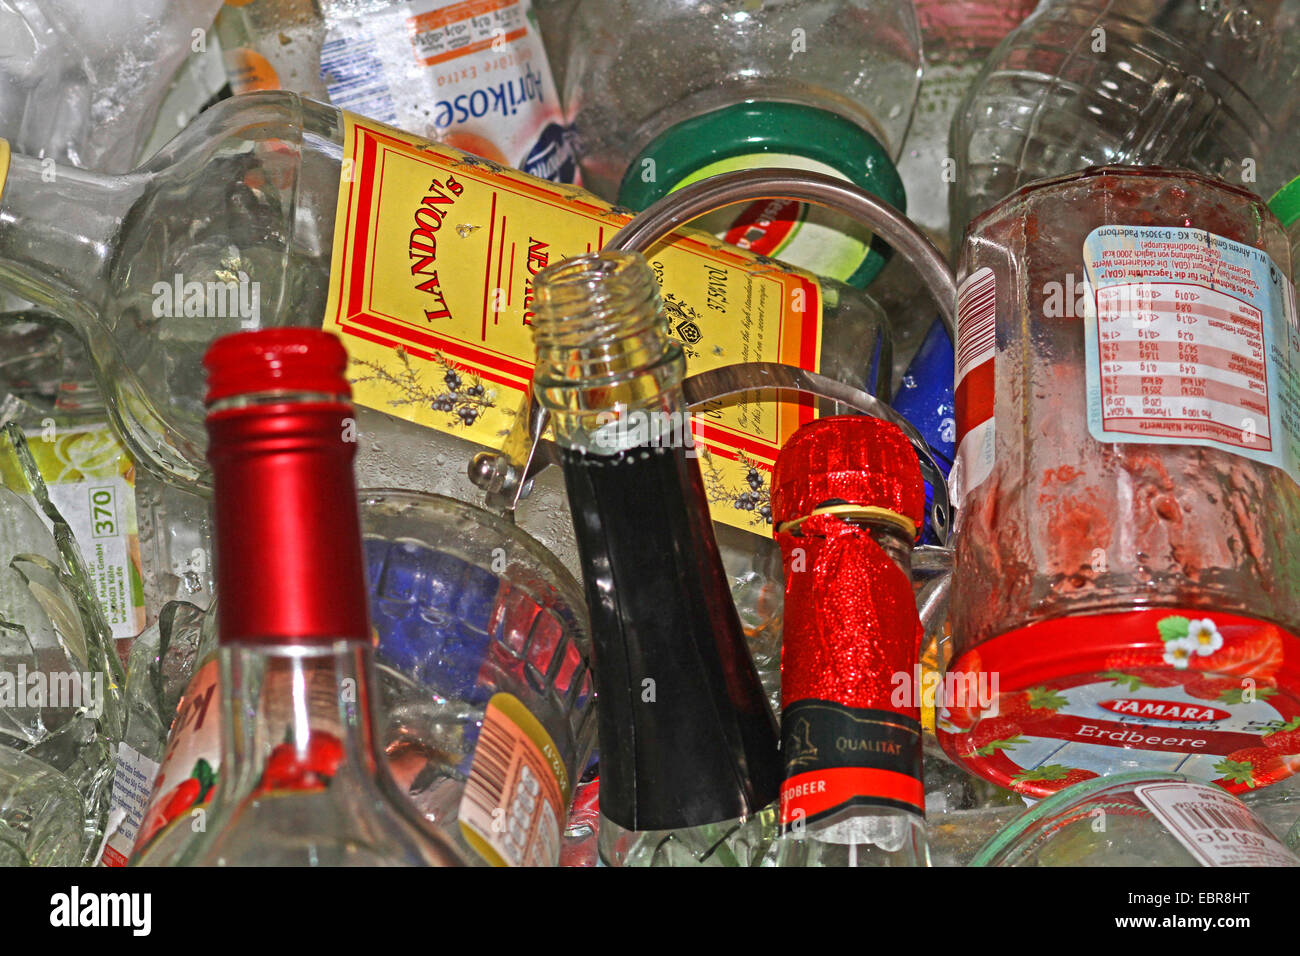 view in a bottle bank, Germany - Stock Image